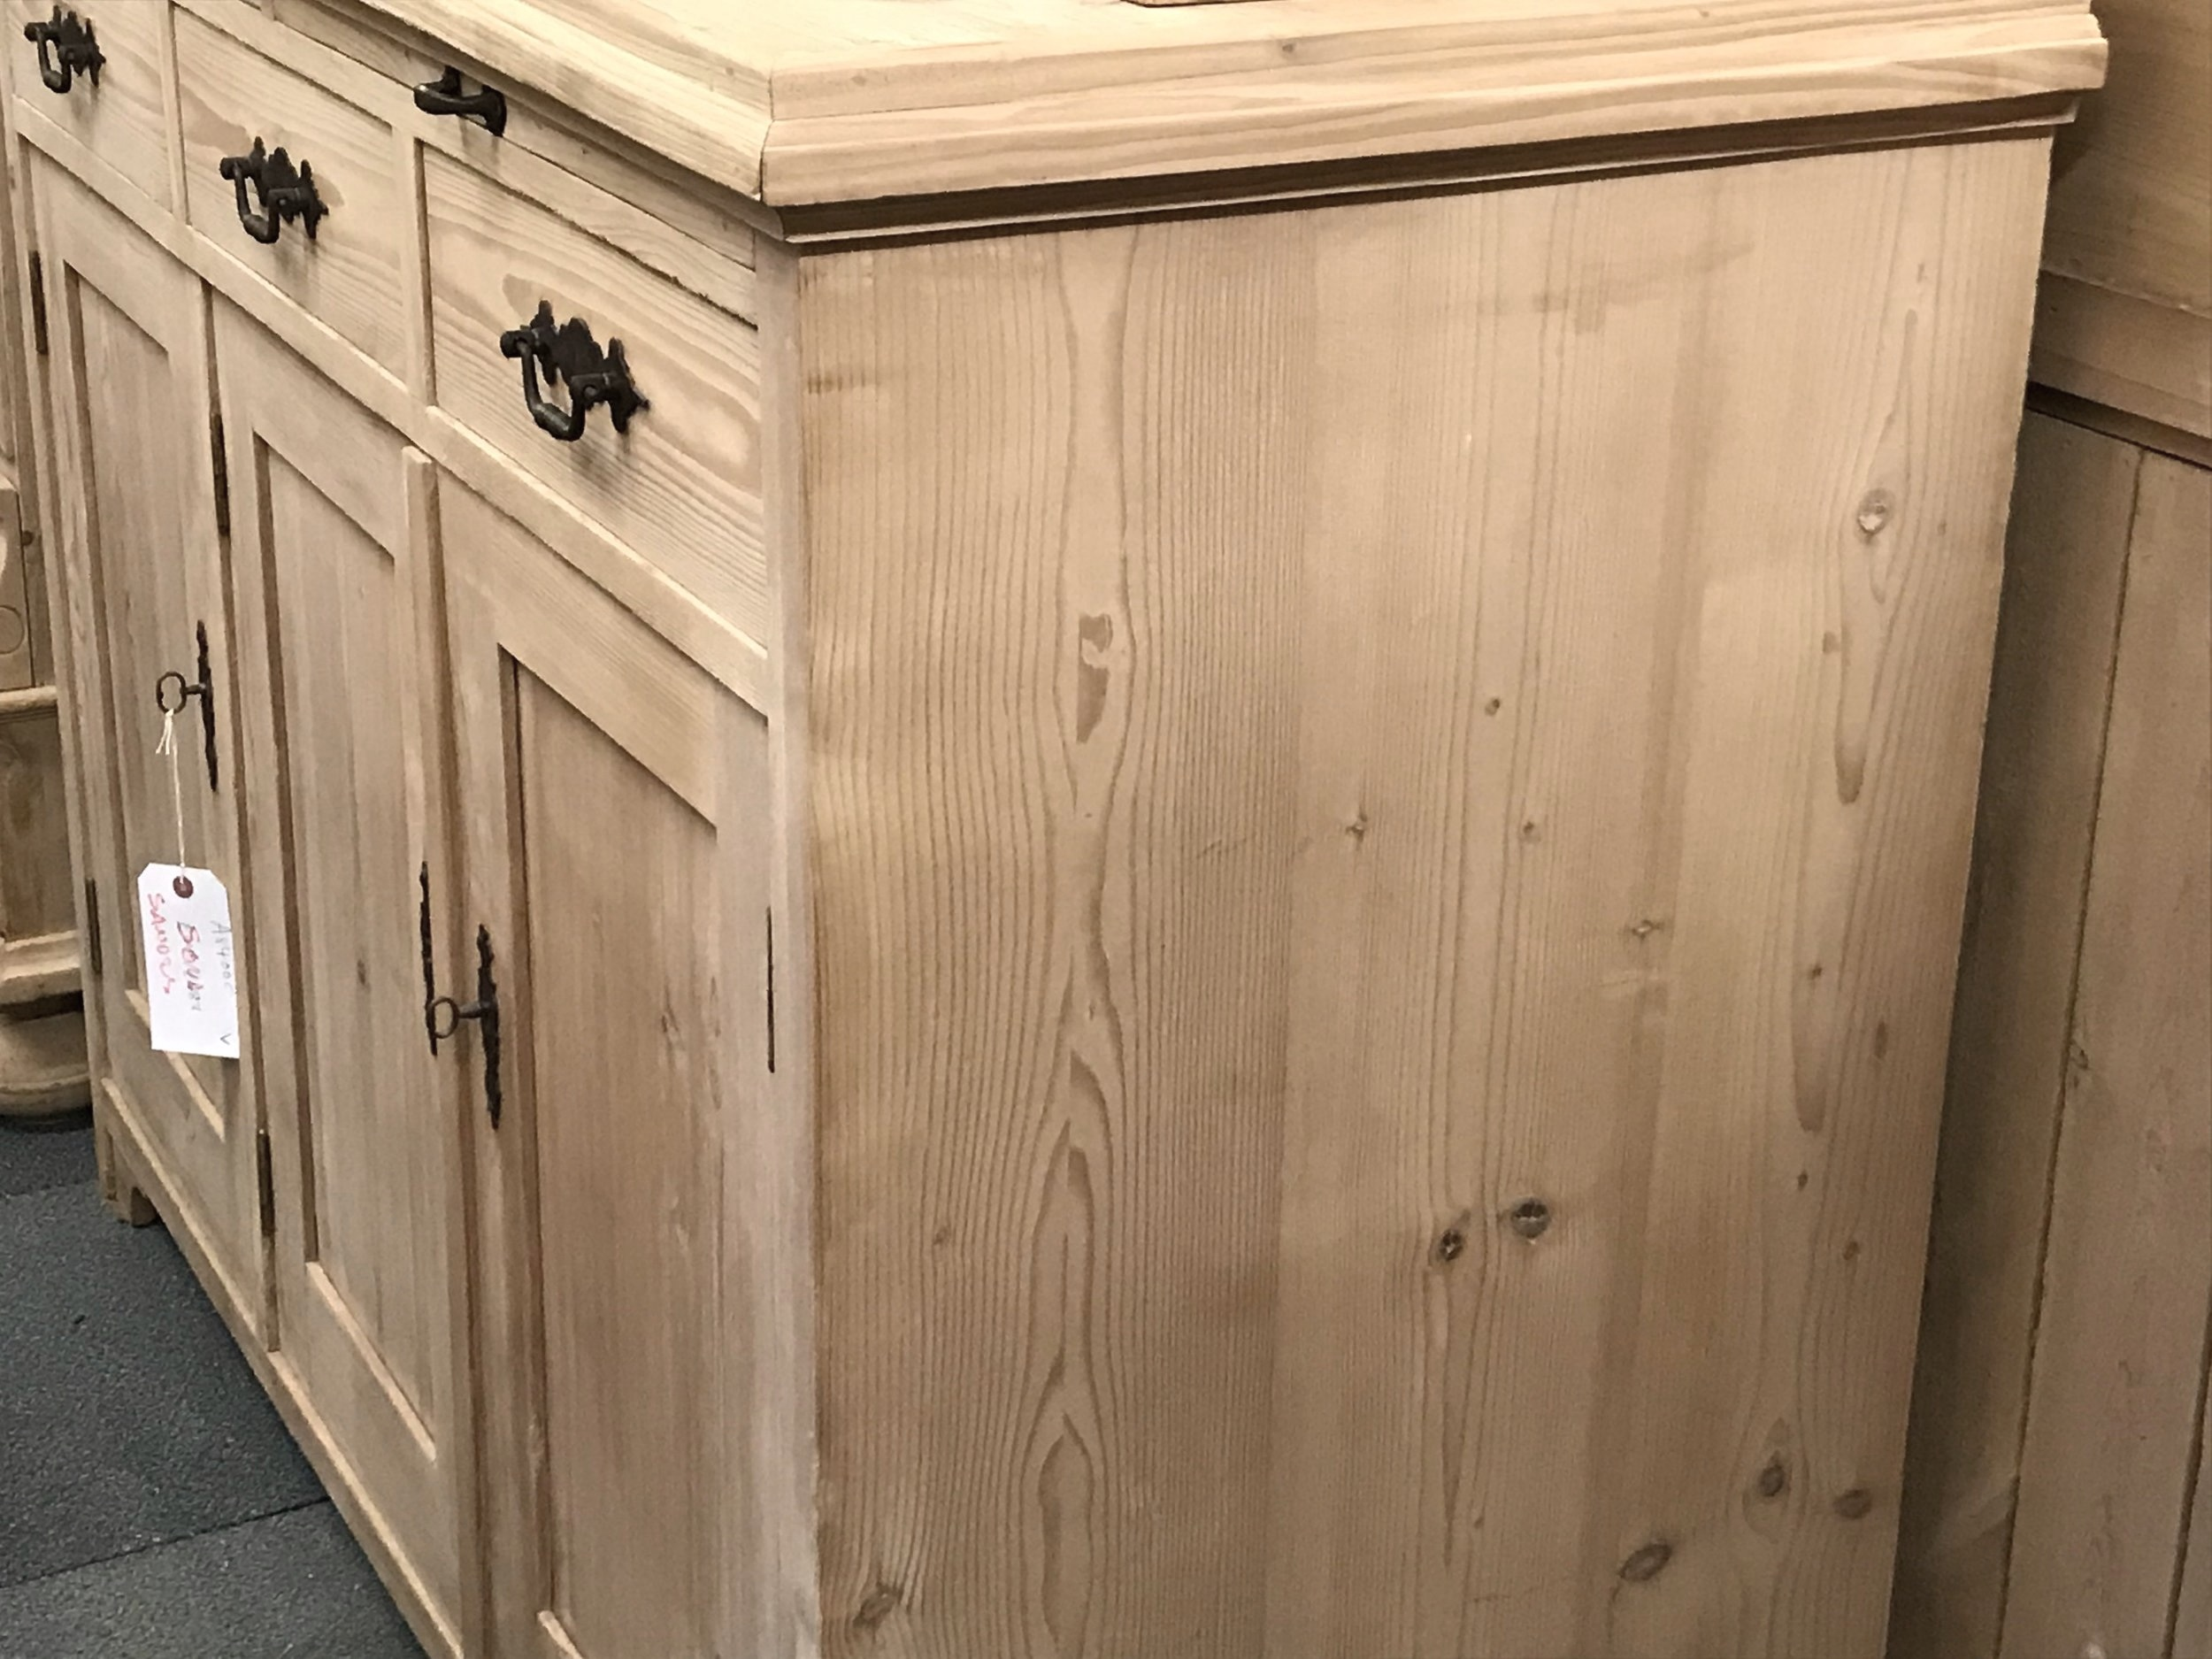 For contrast: here's a cupboard in the bare wood